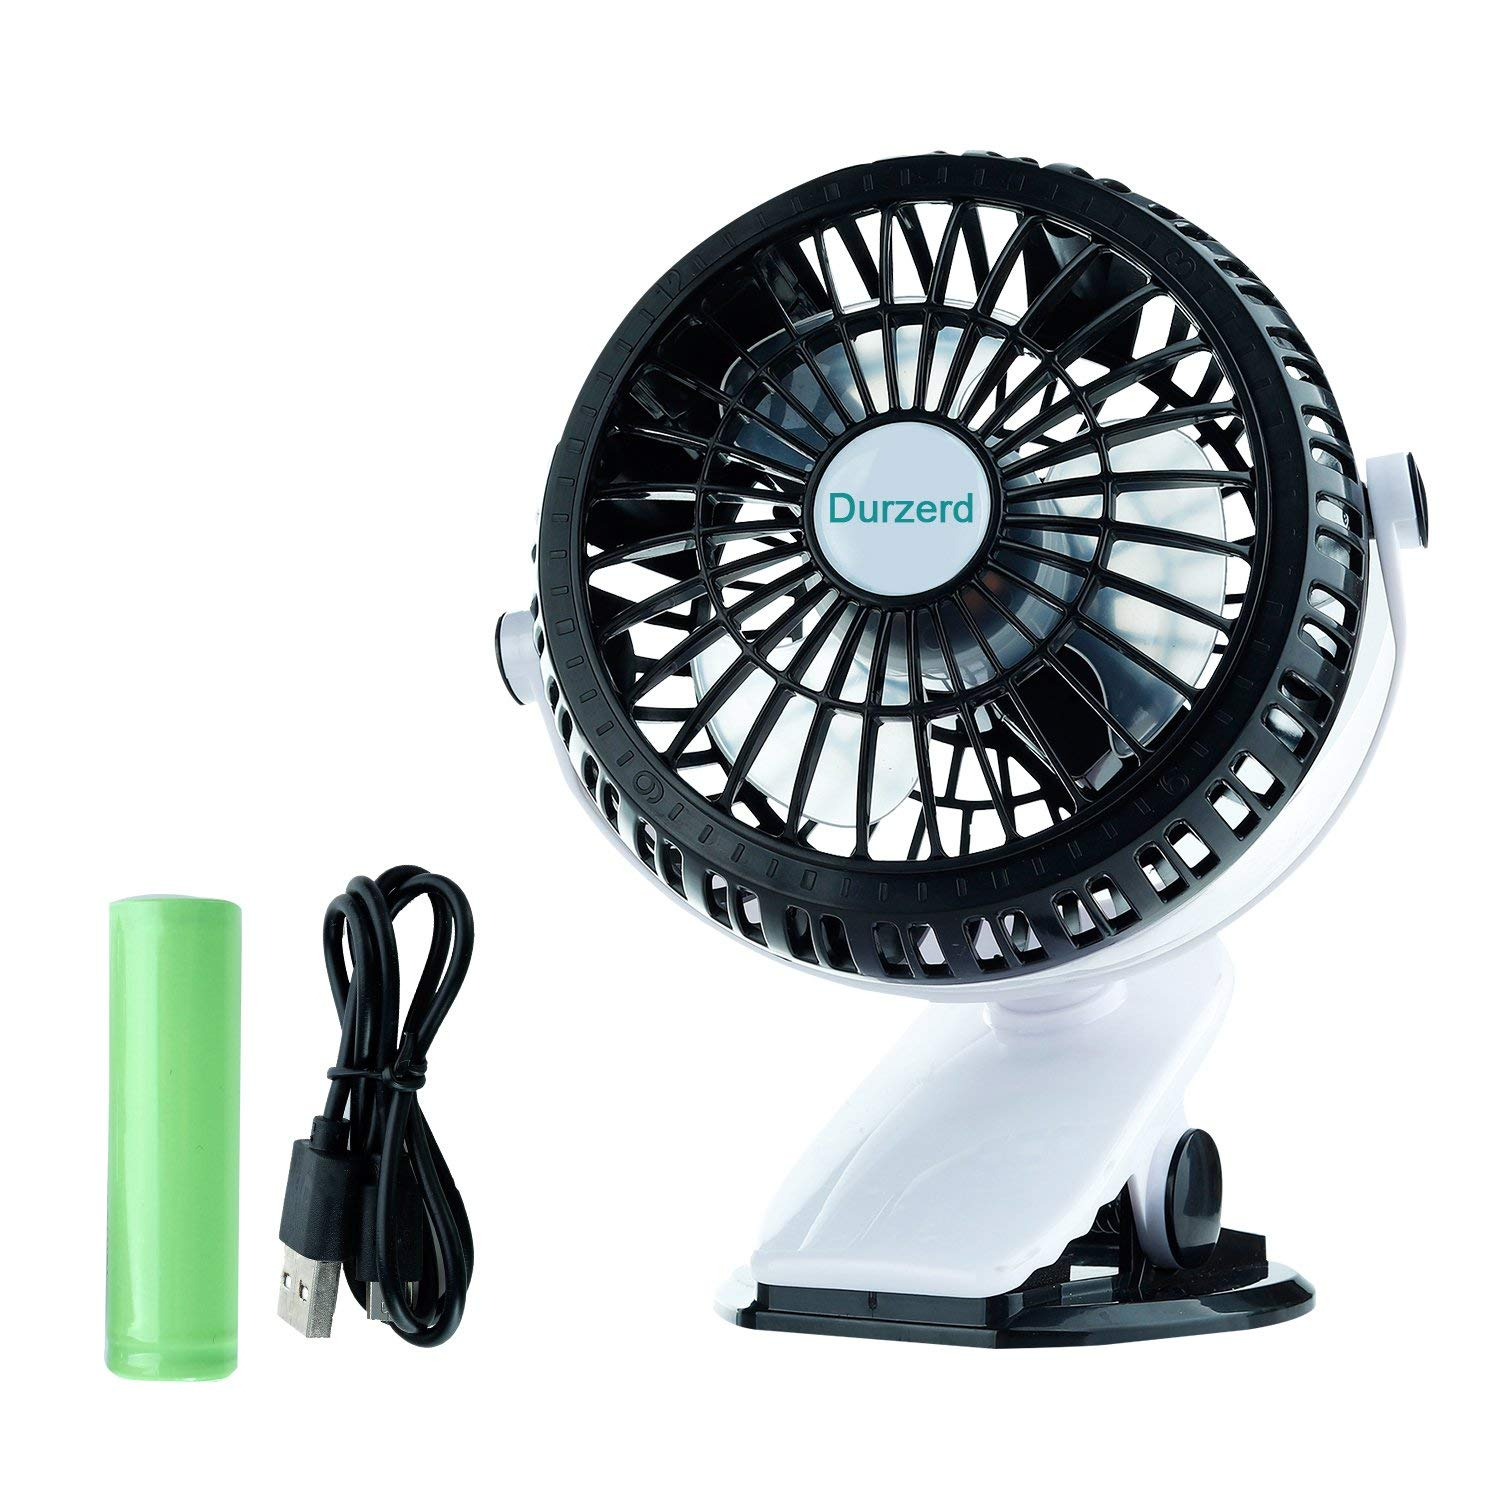 Durzerd Rechargeable Battery Operated Clip on Fan, Mini Desk USB Fan, Personal Portable Fan with 3 Speeds, 2200mAh Battery, 360 degree Rotation, For Baby Stroller, Outdoor, Camping - Black